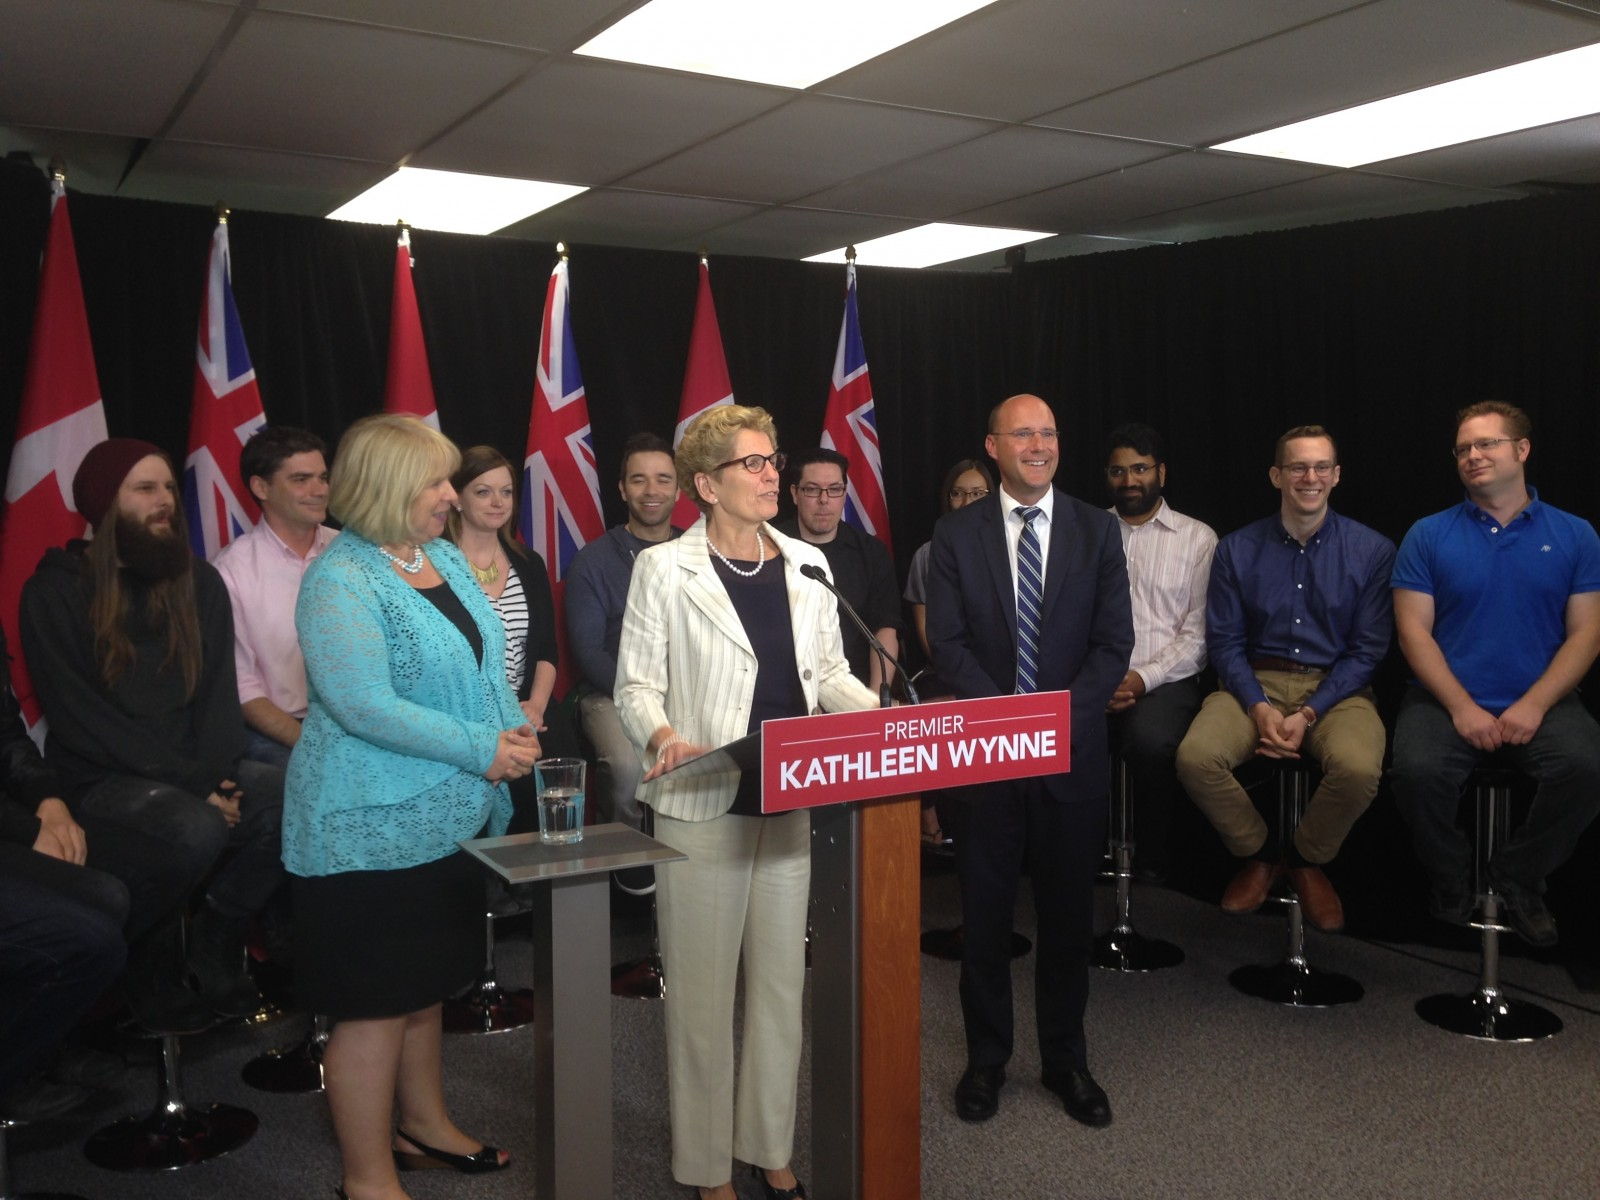 Premier Kathleen Wynne spends Wednesday in London